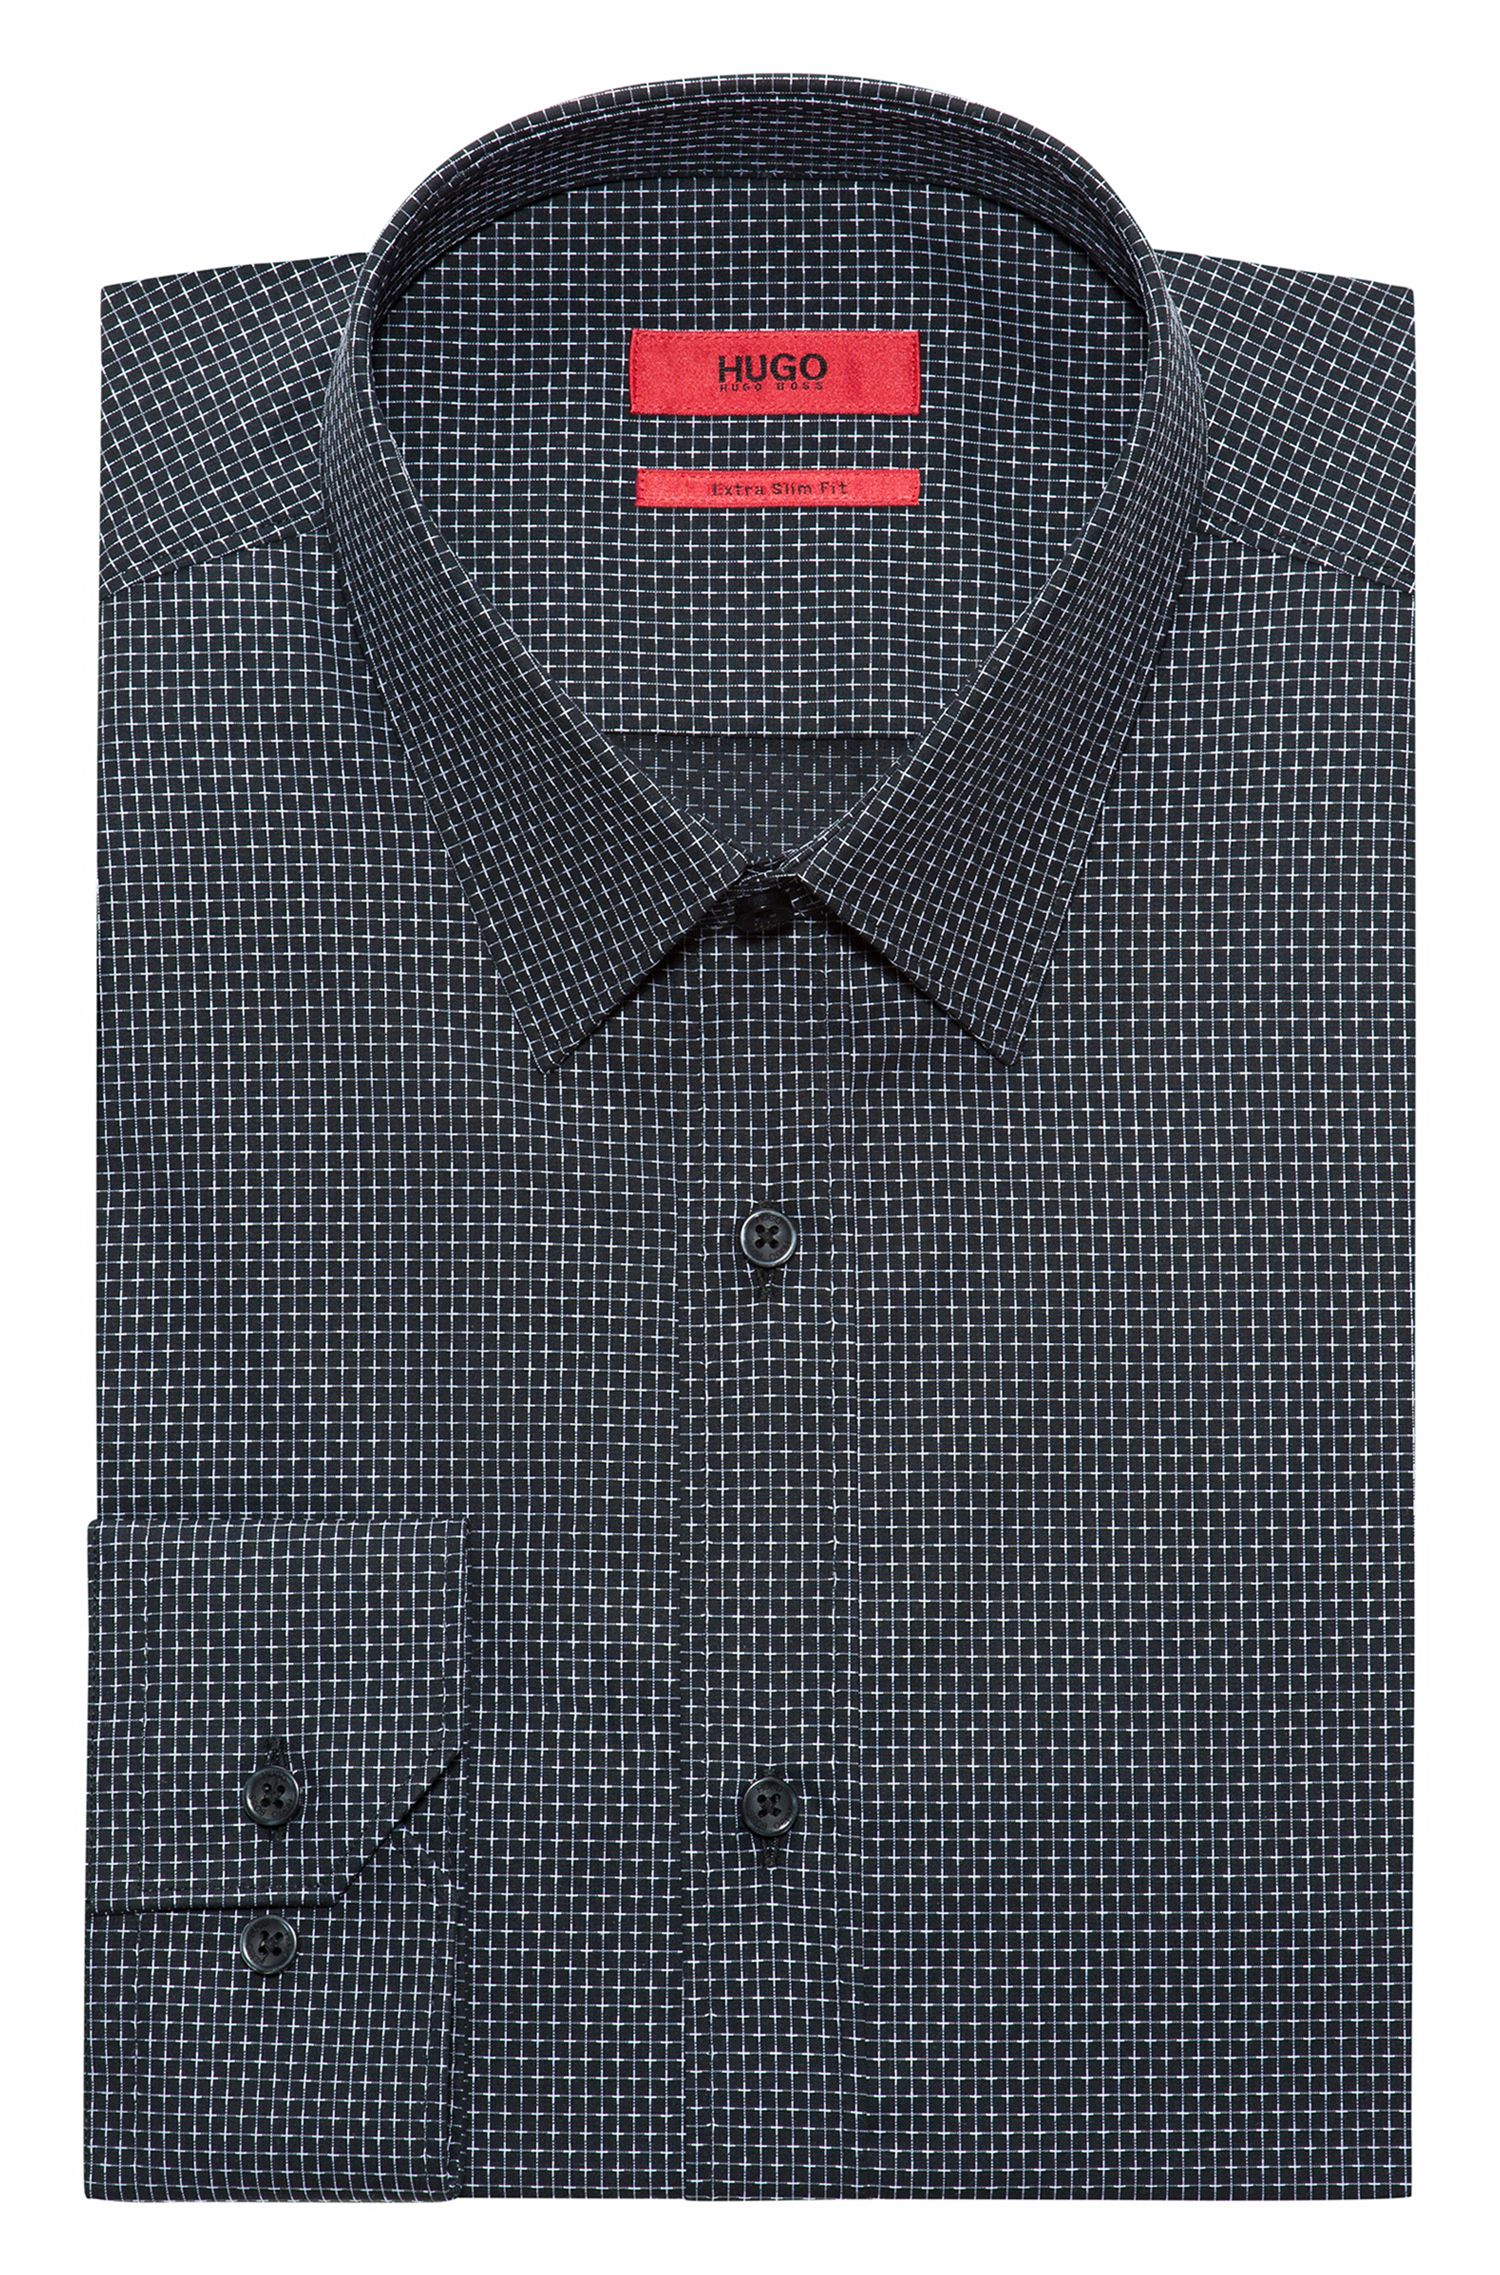 Patterned Cotton Dress Shirt, Extra Slim Fit | Elisha